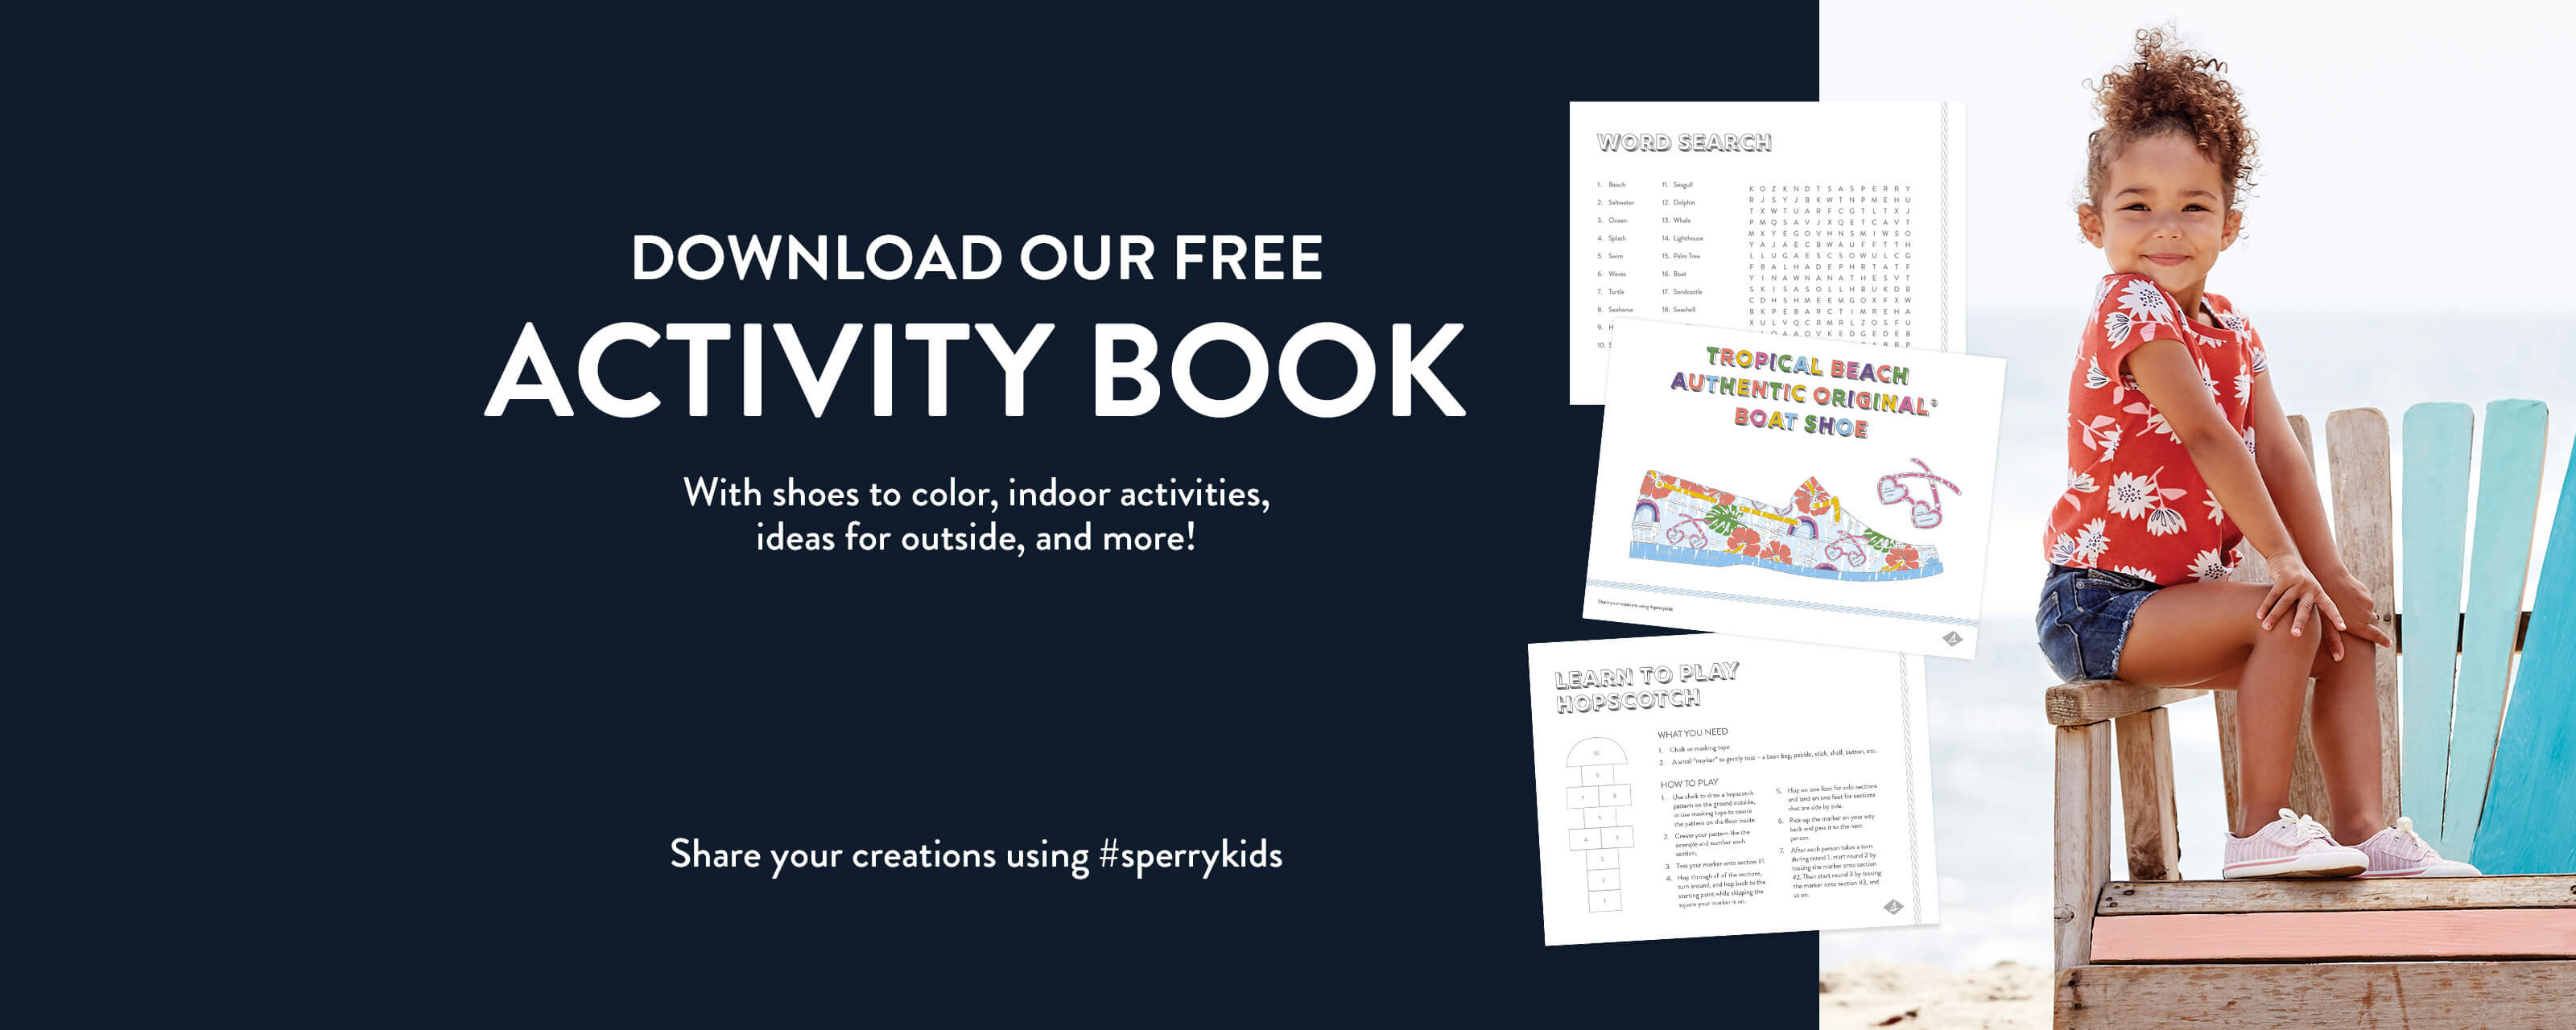 Download our free activity book. With shoes to color, indoor activities, ideas for outside, and more! Share your creations using #sperrykids.